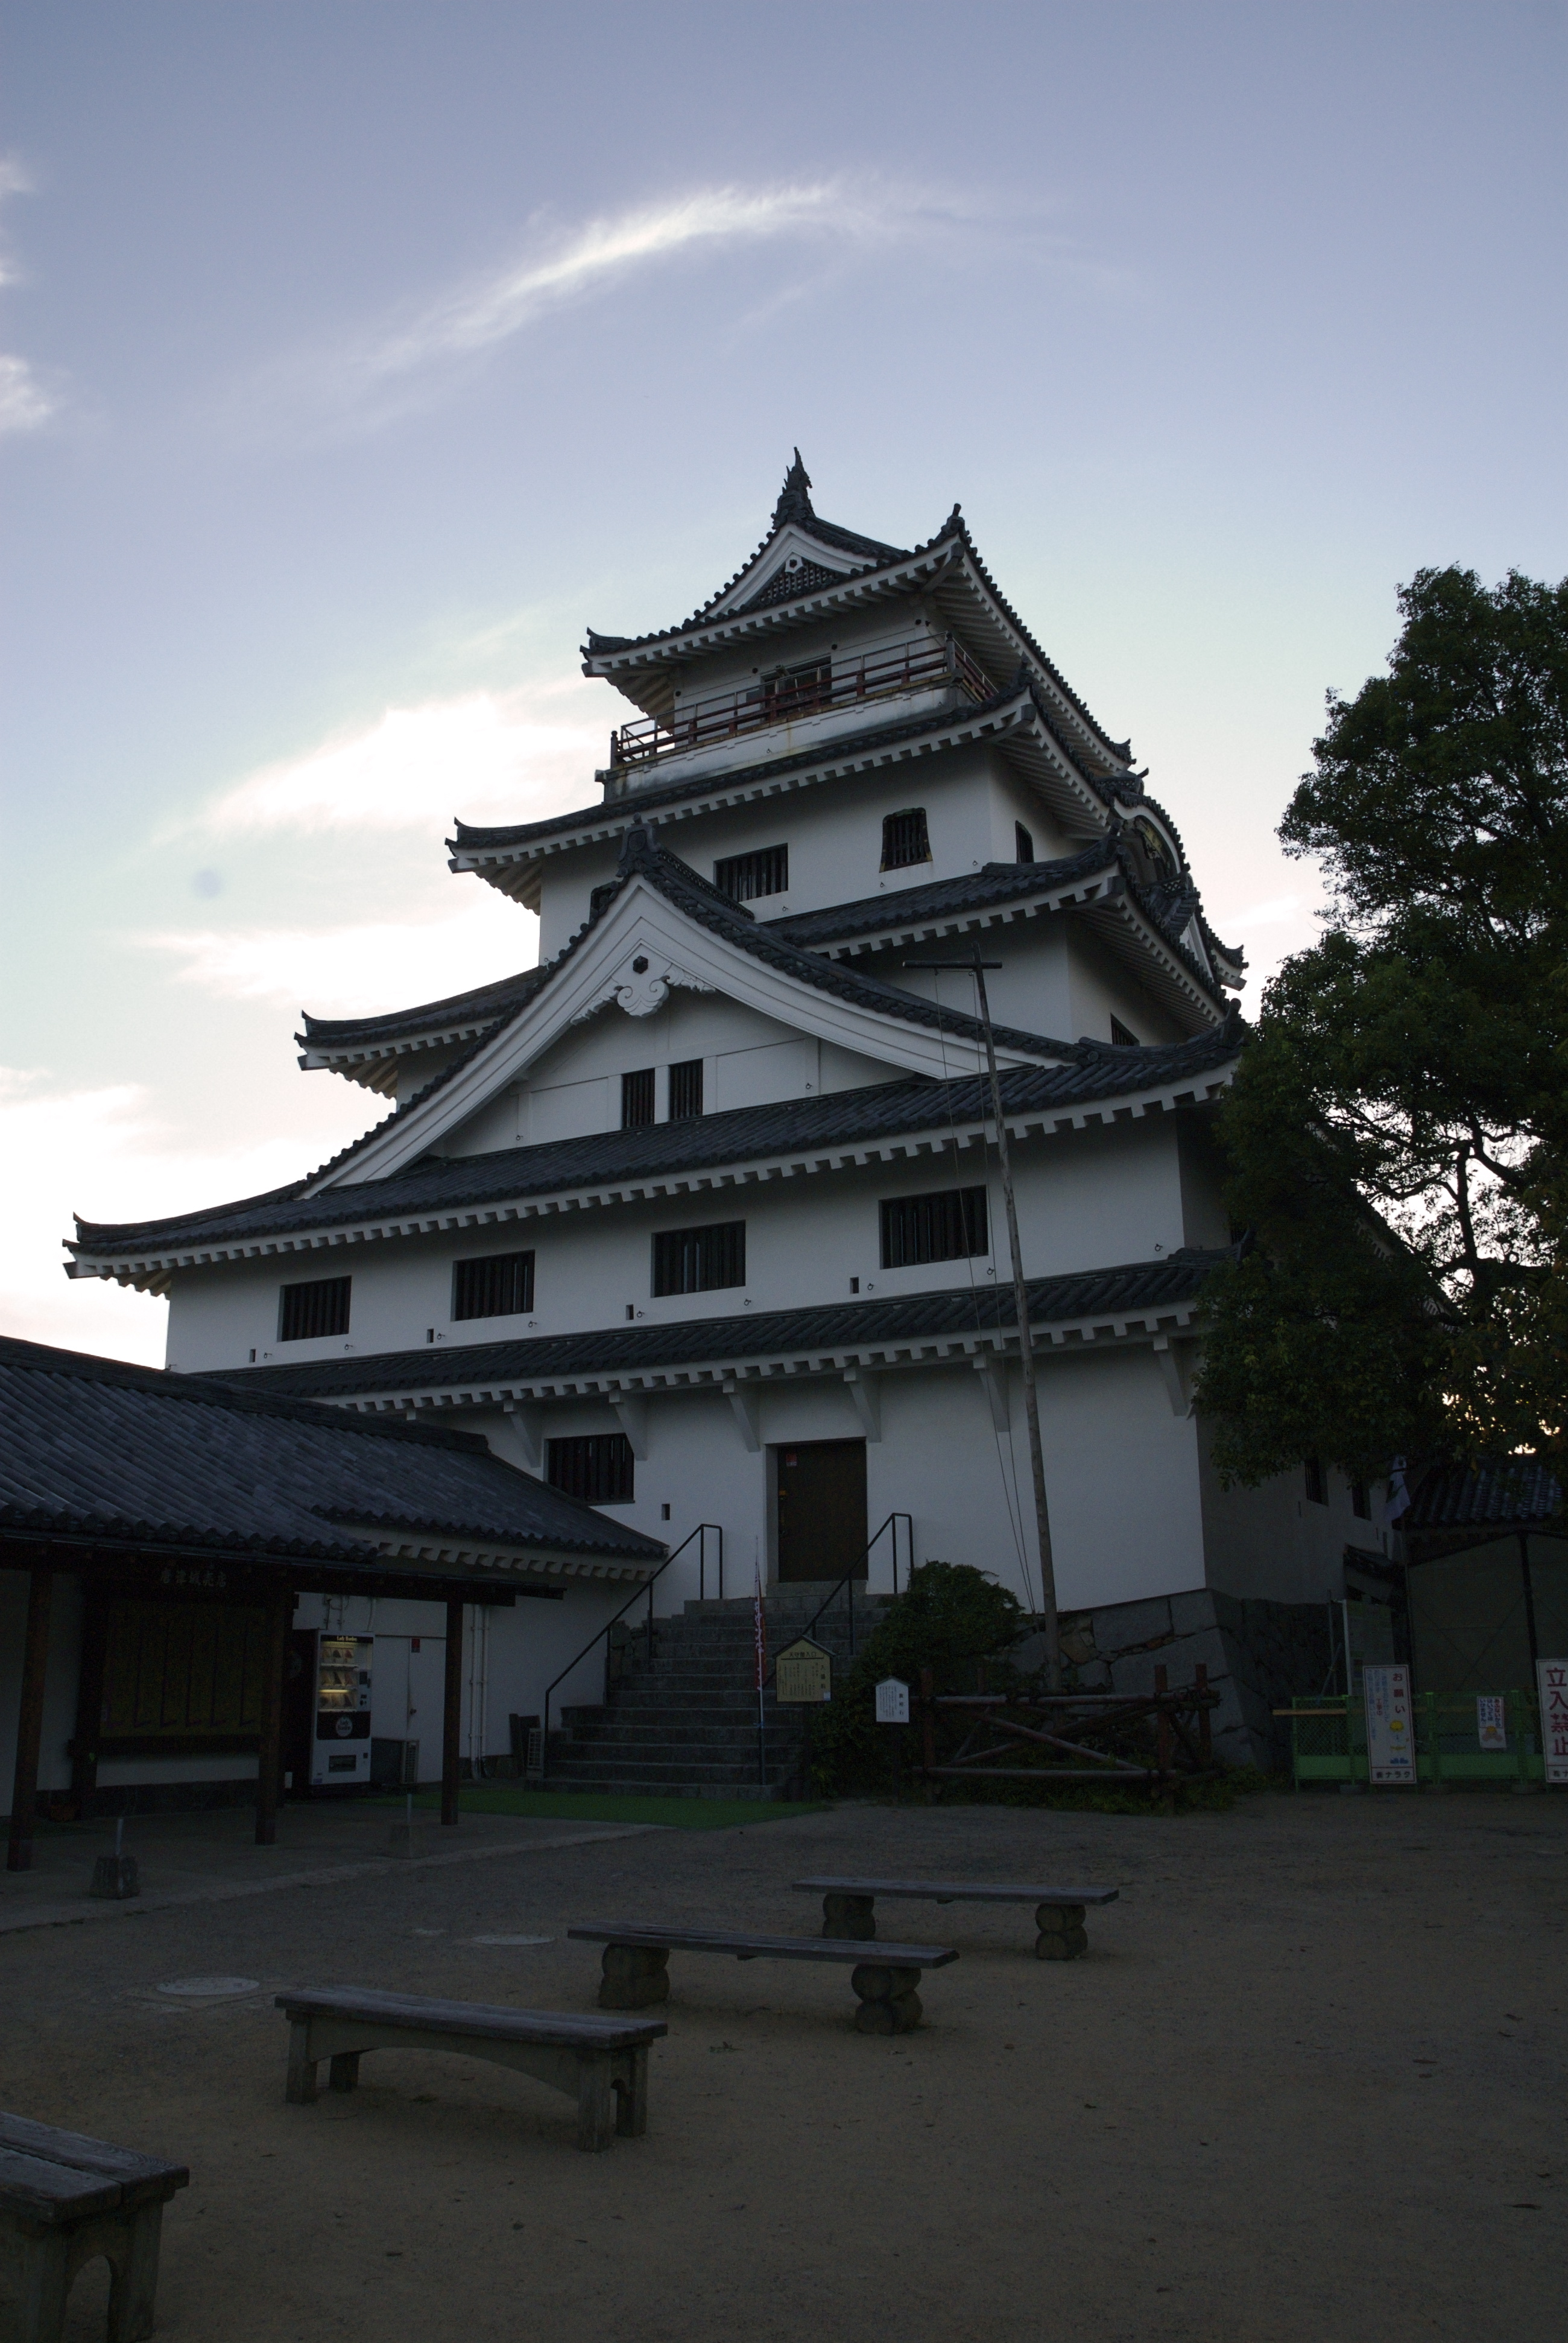 https://upload.wikimedia.org/wikipedia/ja/9/9e/KaratsuCastle1.jpg